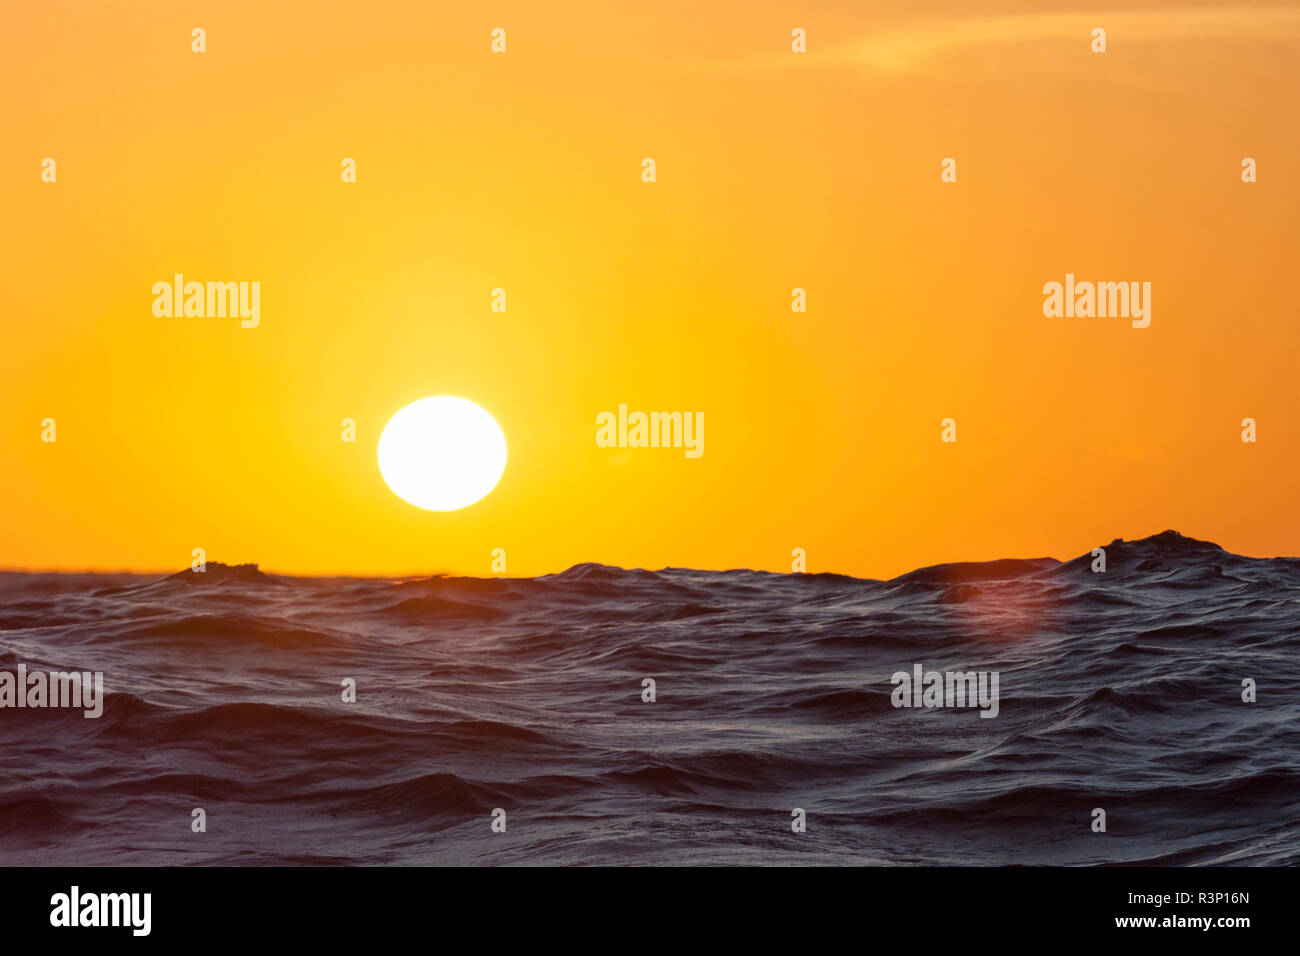 The sun is setting somewhere out in the middle of the Atlantic Ocean - Stock Image